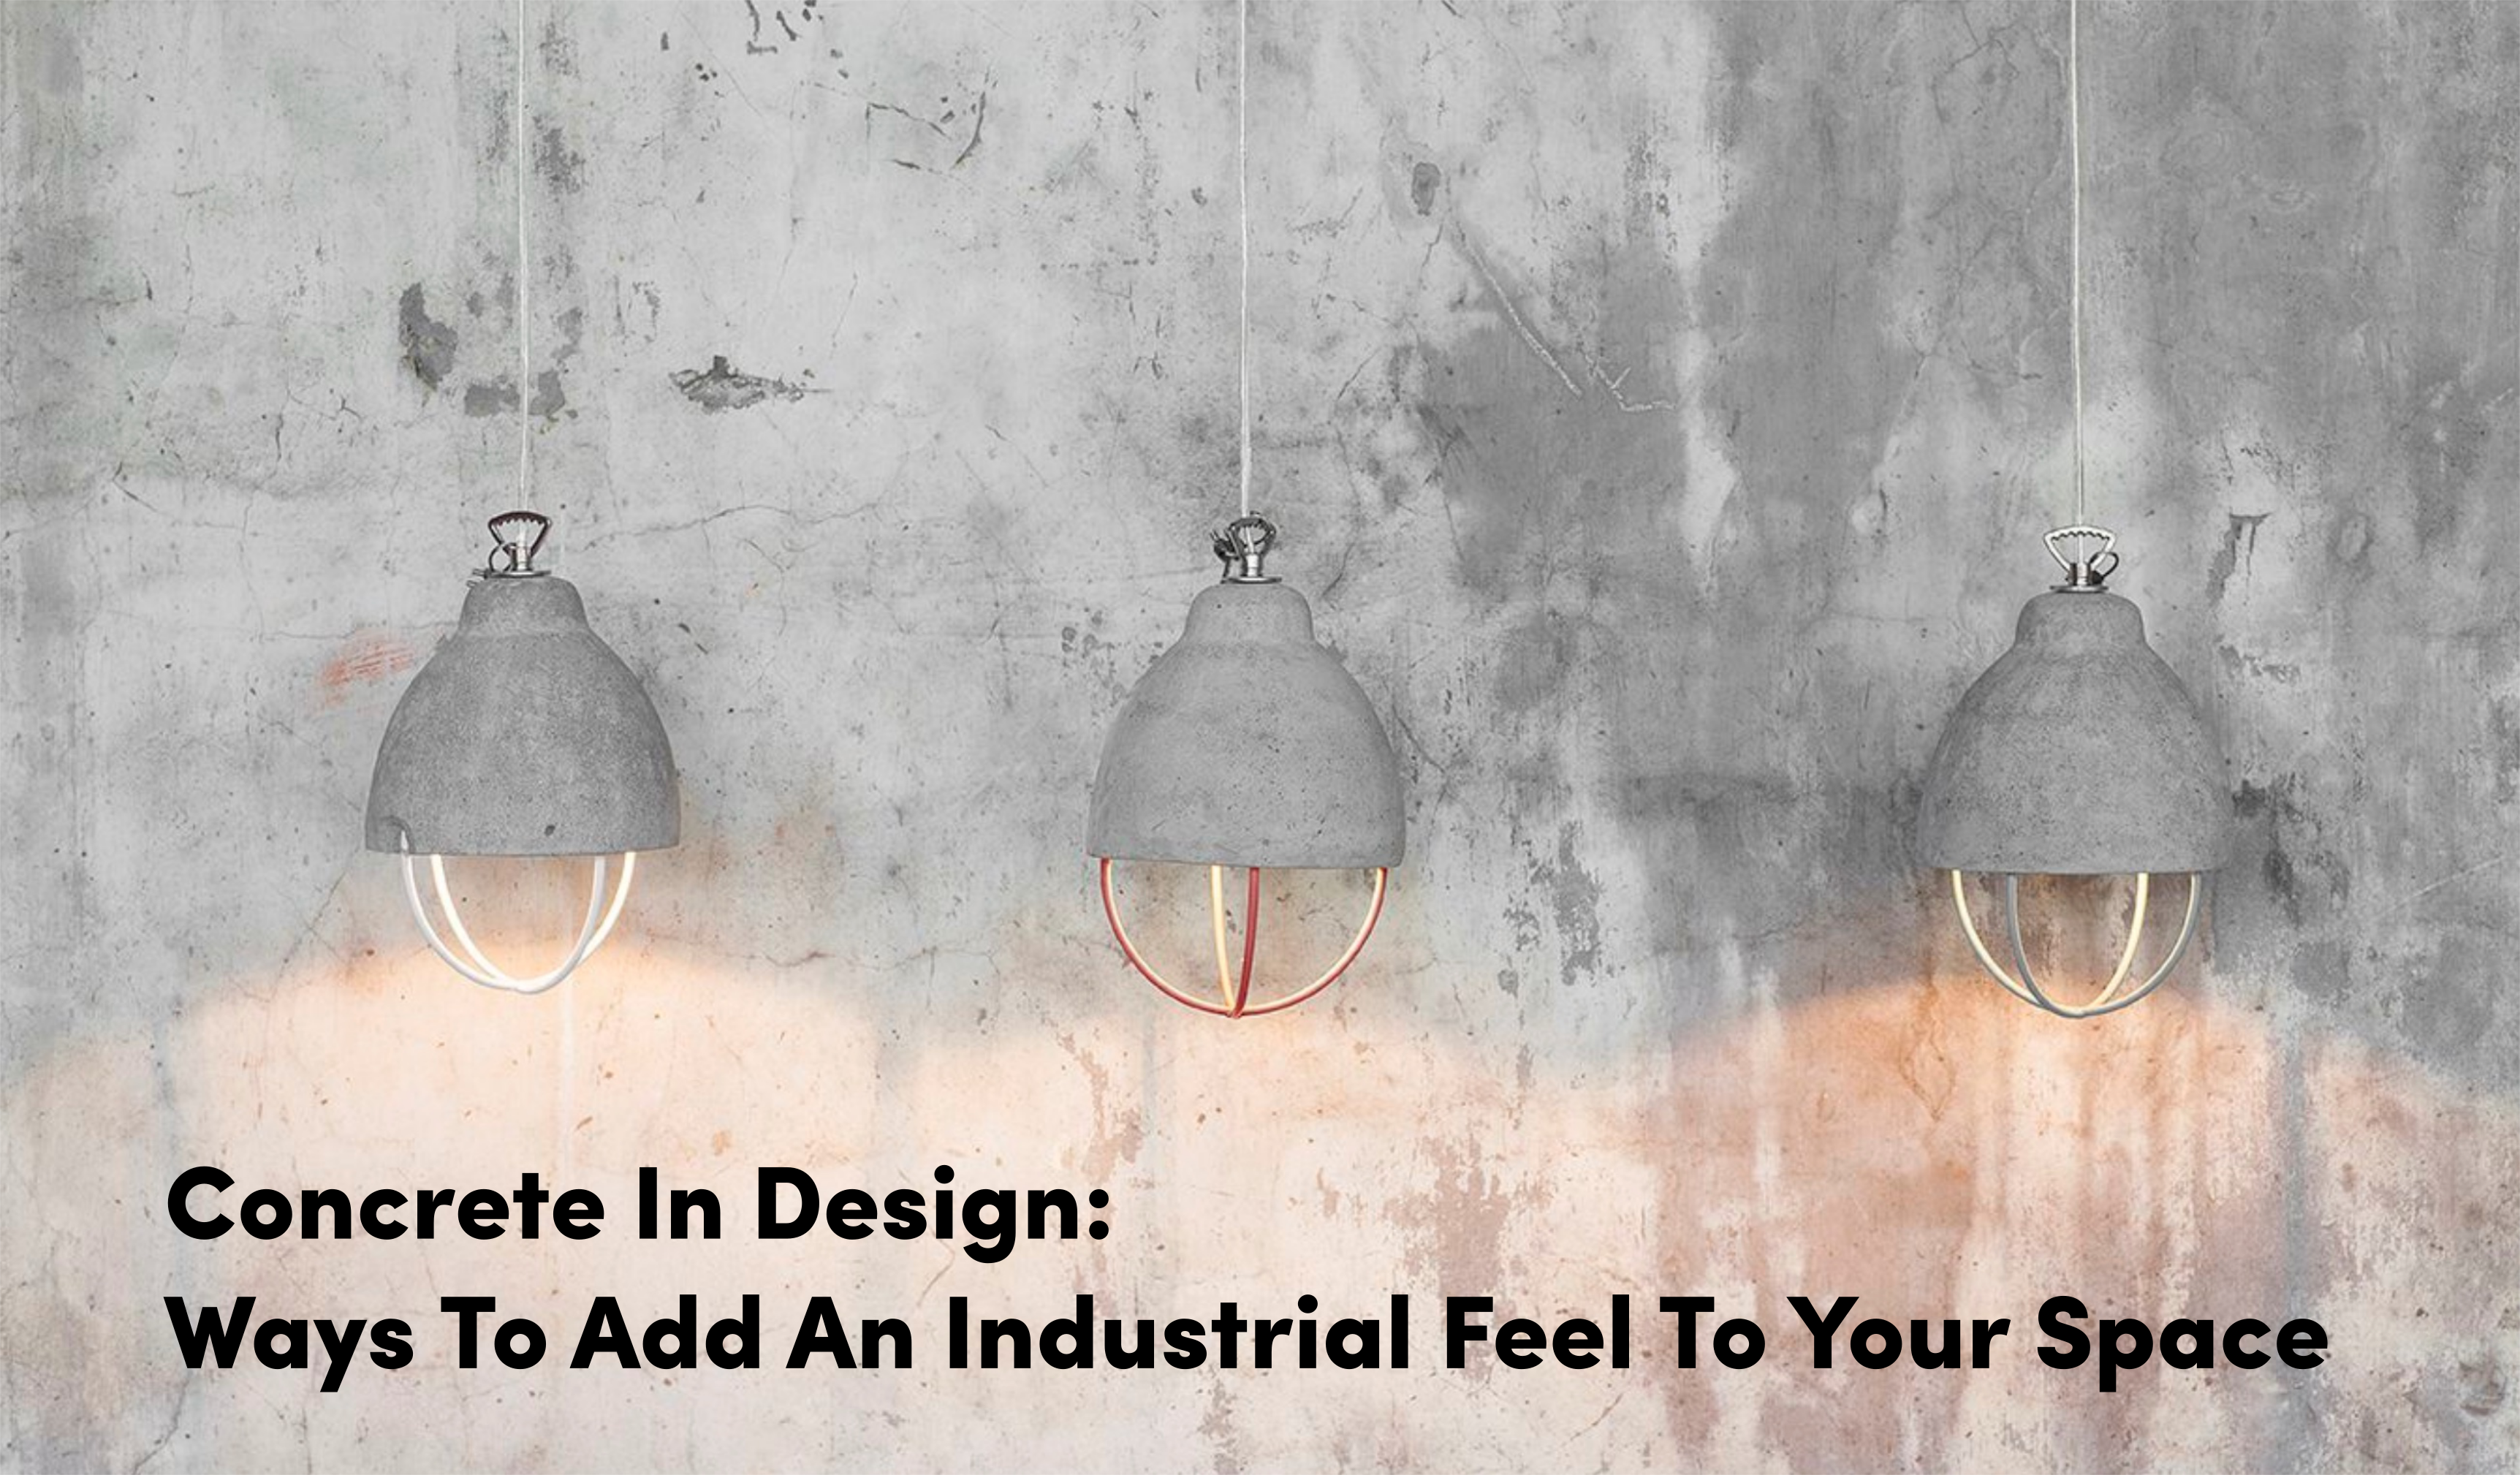 From concrete wine coolers to lamps to stools to pots, smaller accessories can be a great way to add an industrial vibe to your home. Its subtle sophistication and durable nature gives a sense of strength and boldness to any space.  #concrete #concretedesign #concreteobjects #mariemichielssen #thedesignpart